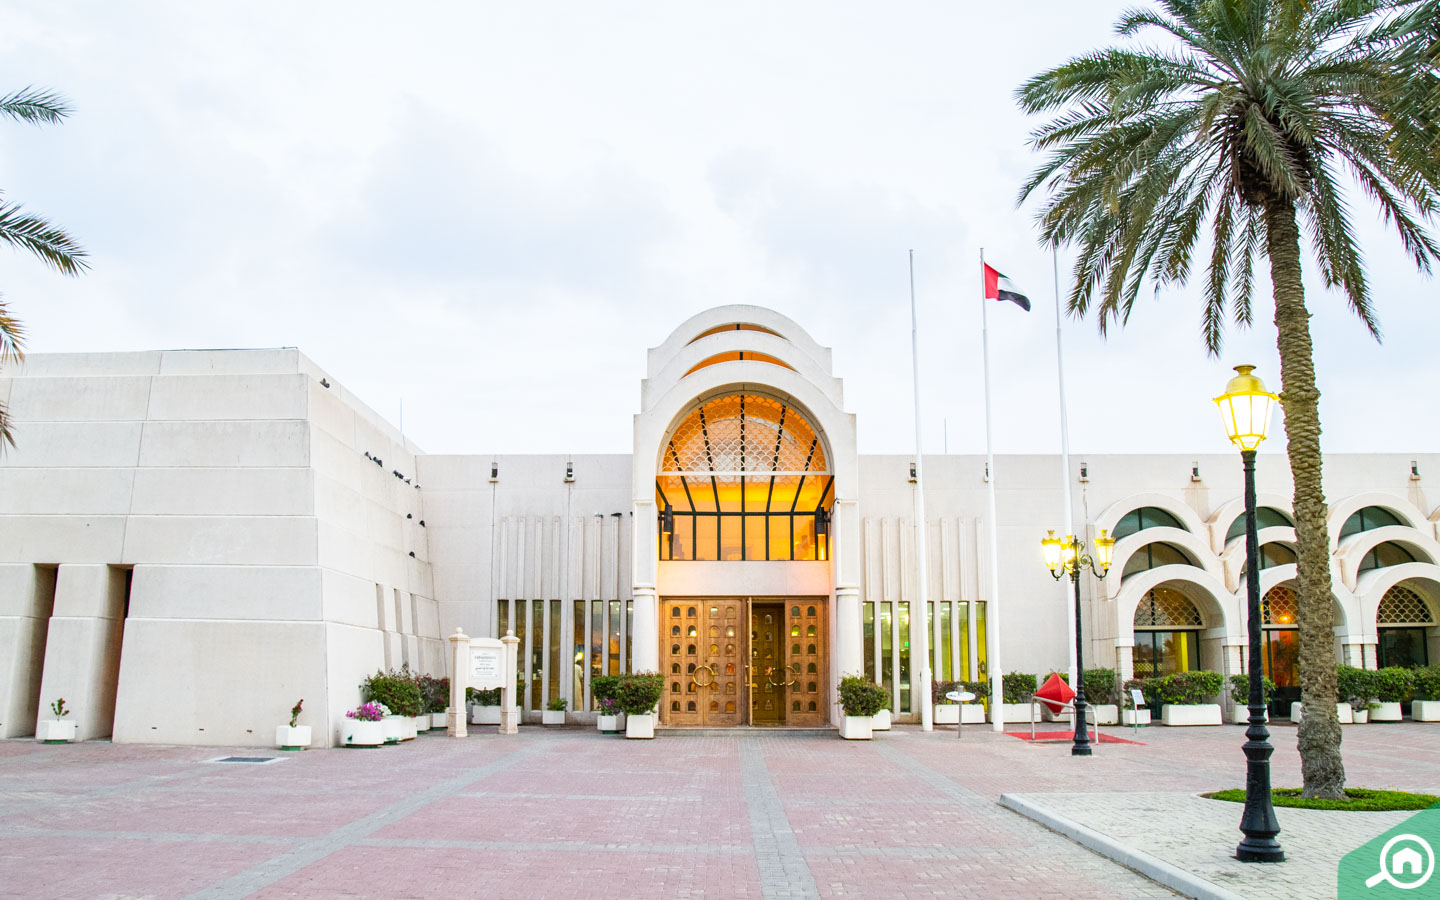 Sharjah Science museum facade and main gate